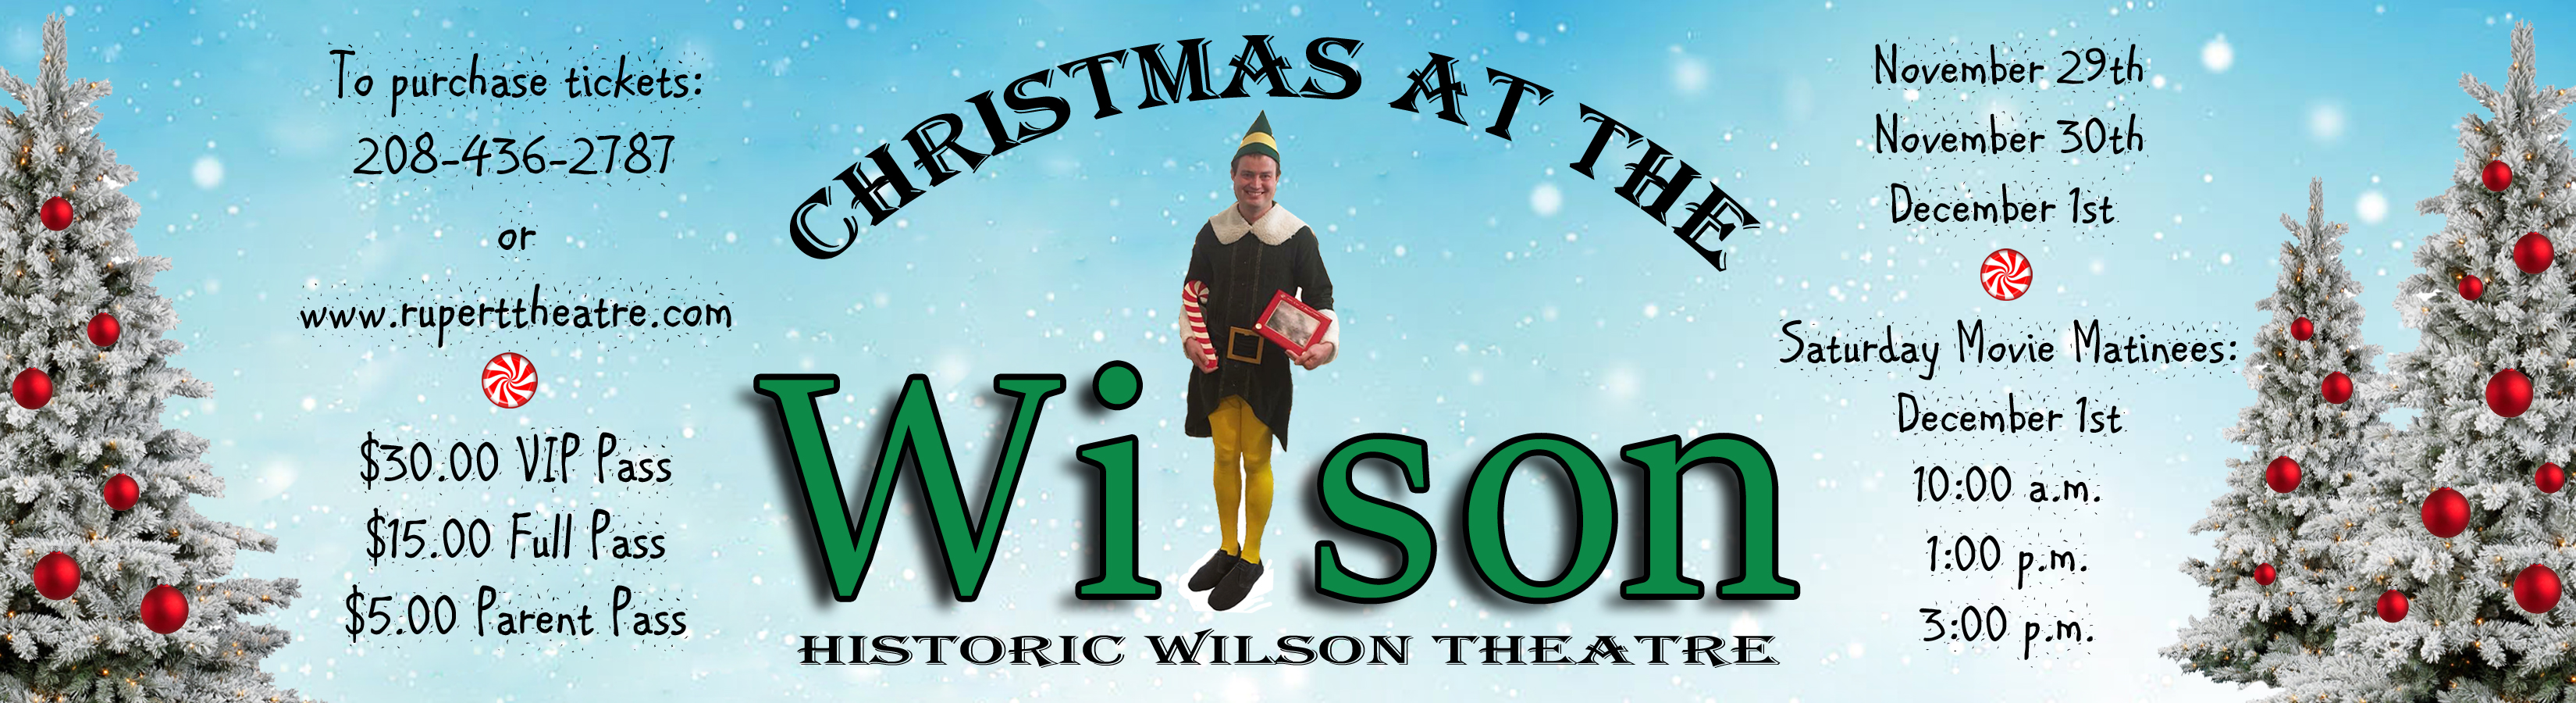 Christmas at the Wilson featuring the movie Elf!